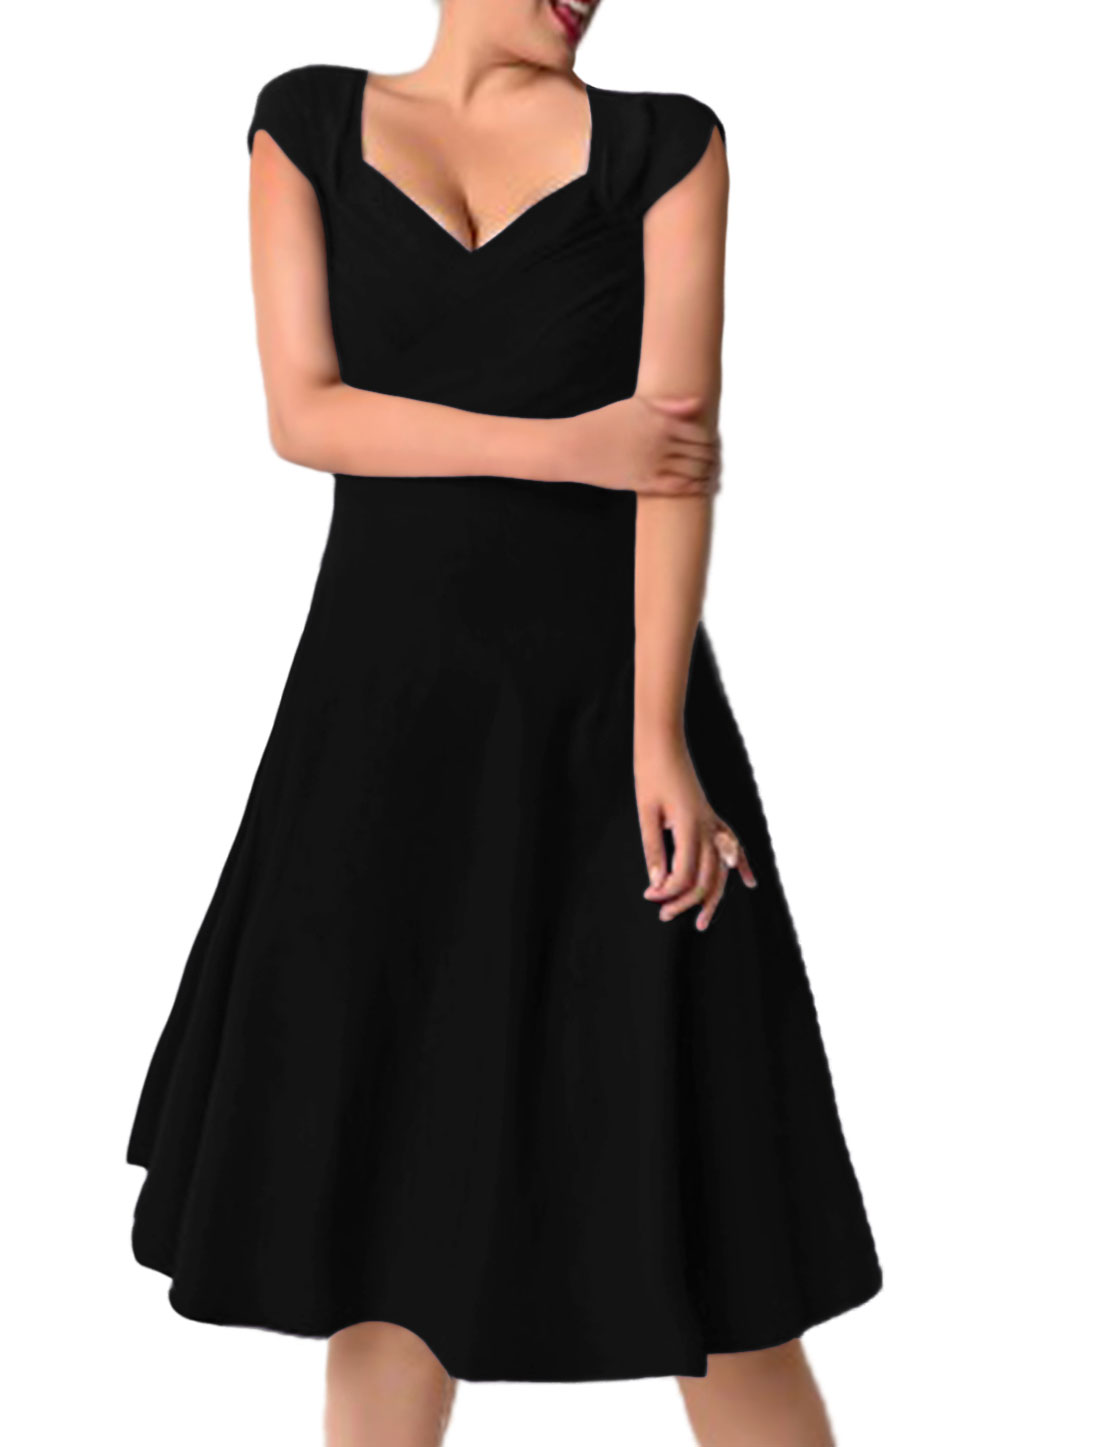 Women Ruched Asymmetric Neck Below Knee Fit and Flare Dress Black L